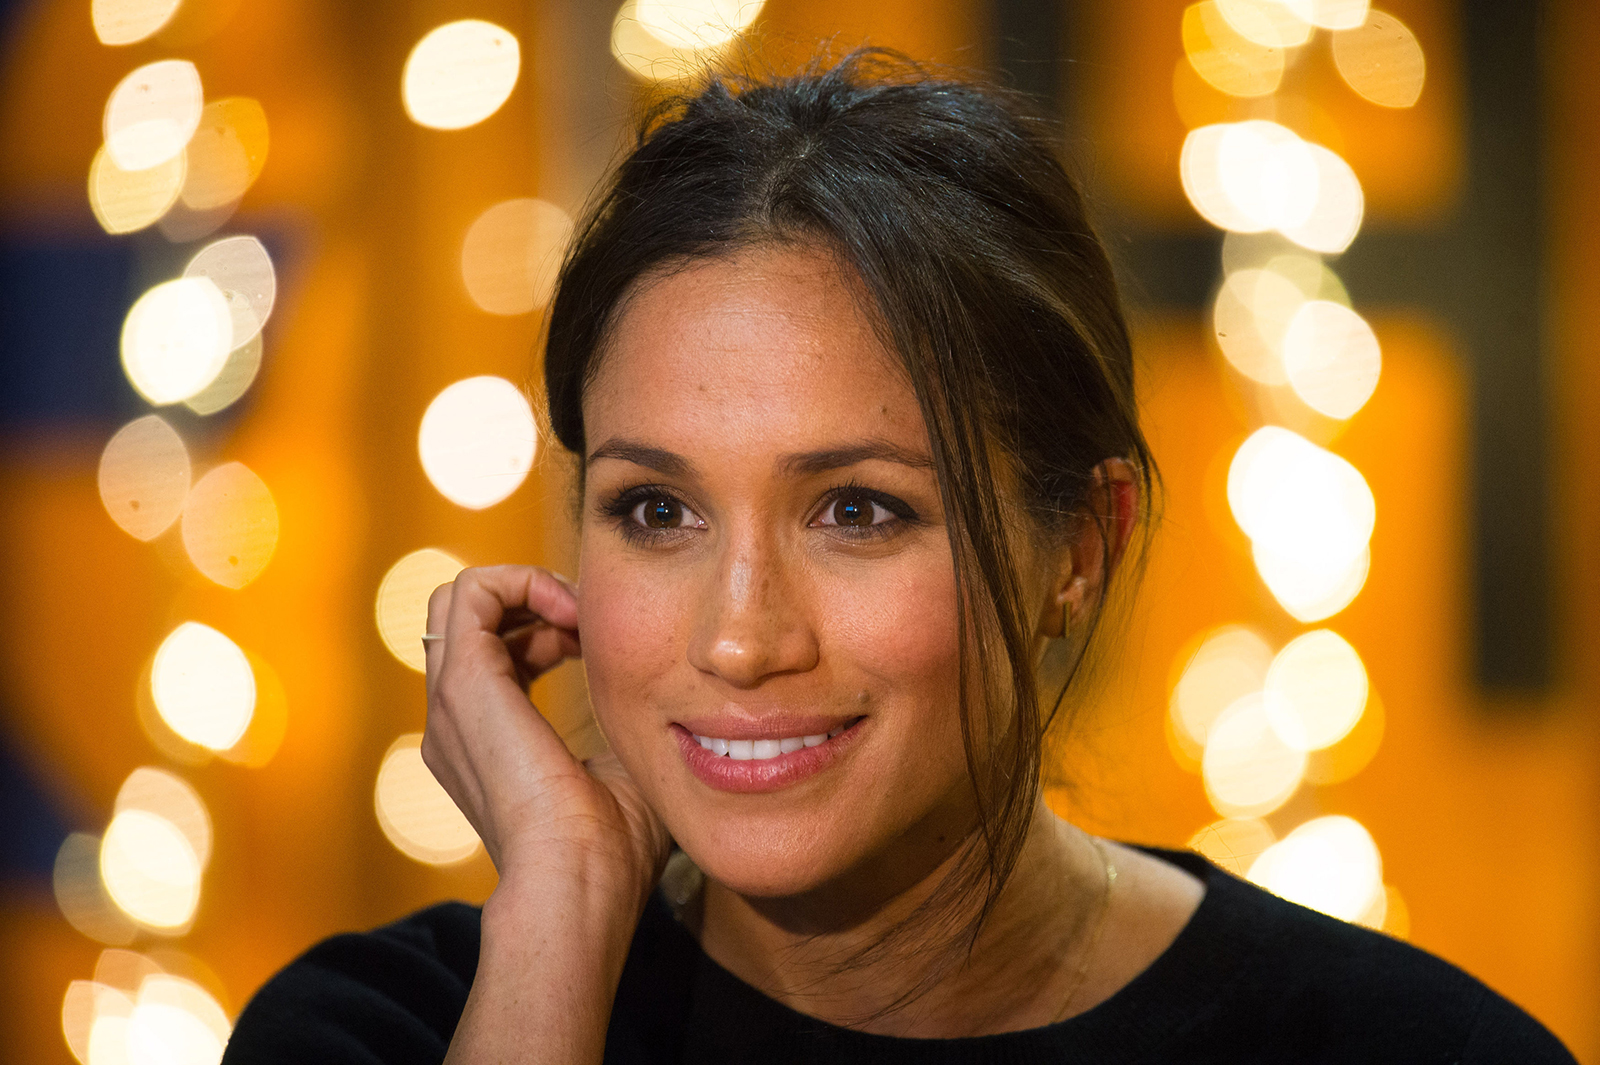 Britain's Prince Harry's fiancée Meghan Markle gestures during a visit to Reprezent 107.3FM community radio station in Brixton, south west London on January 9, 2018.